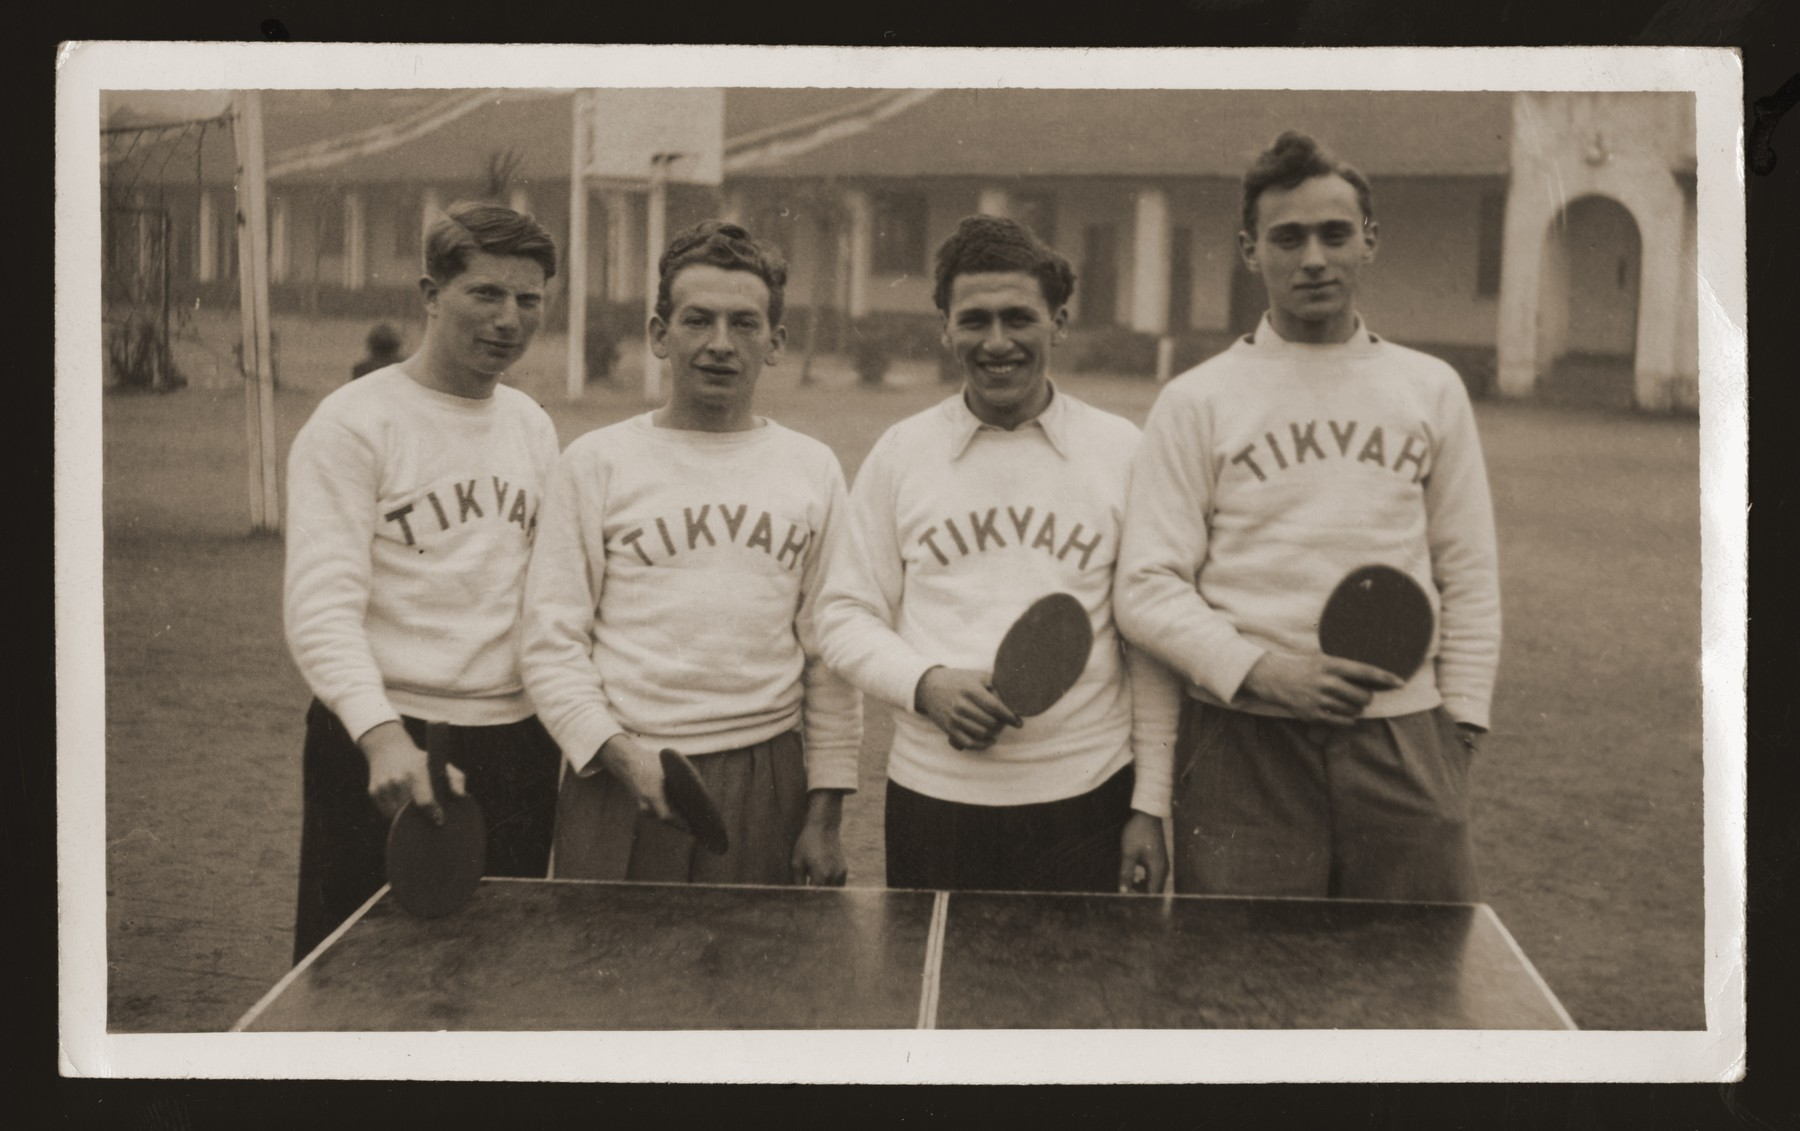 Group portrait of members of the Tikvah ping pong team.    Pictured from left to right are Ilie Wacs, Werner Rosenberg and Henry Sattler.